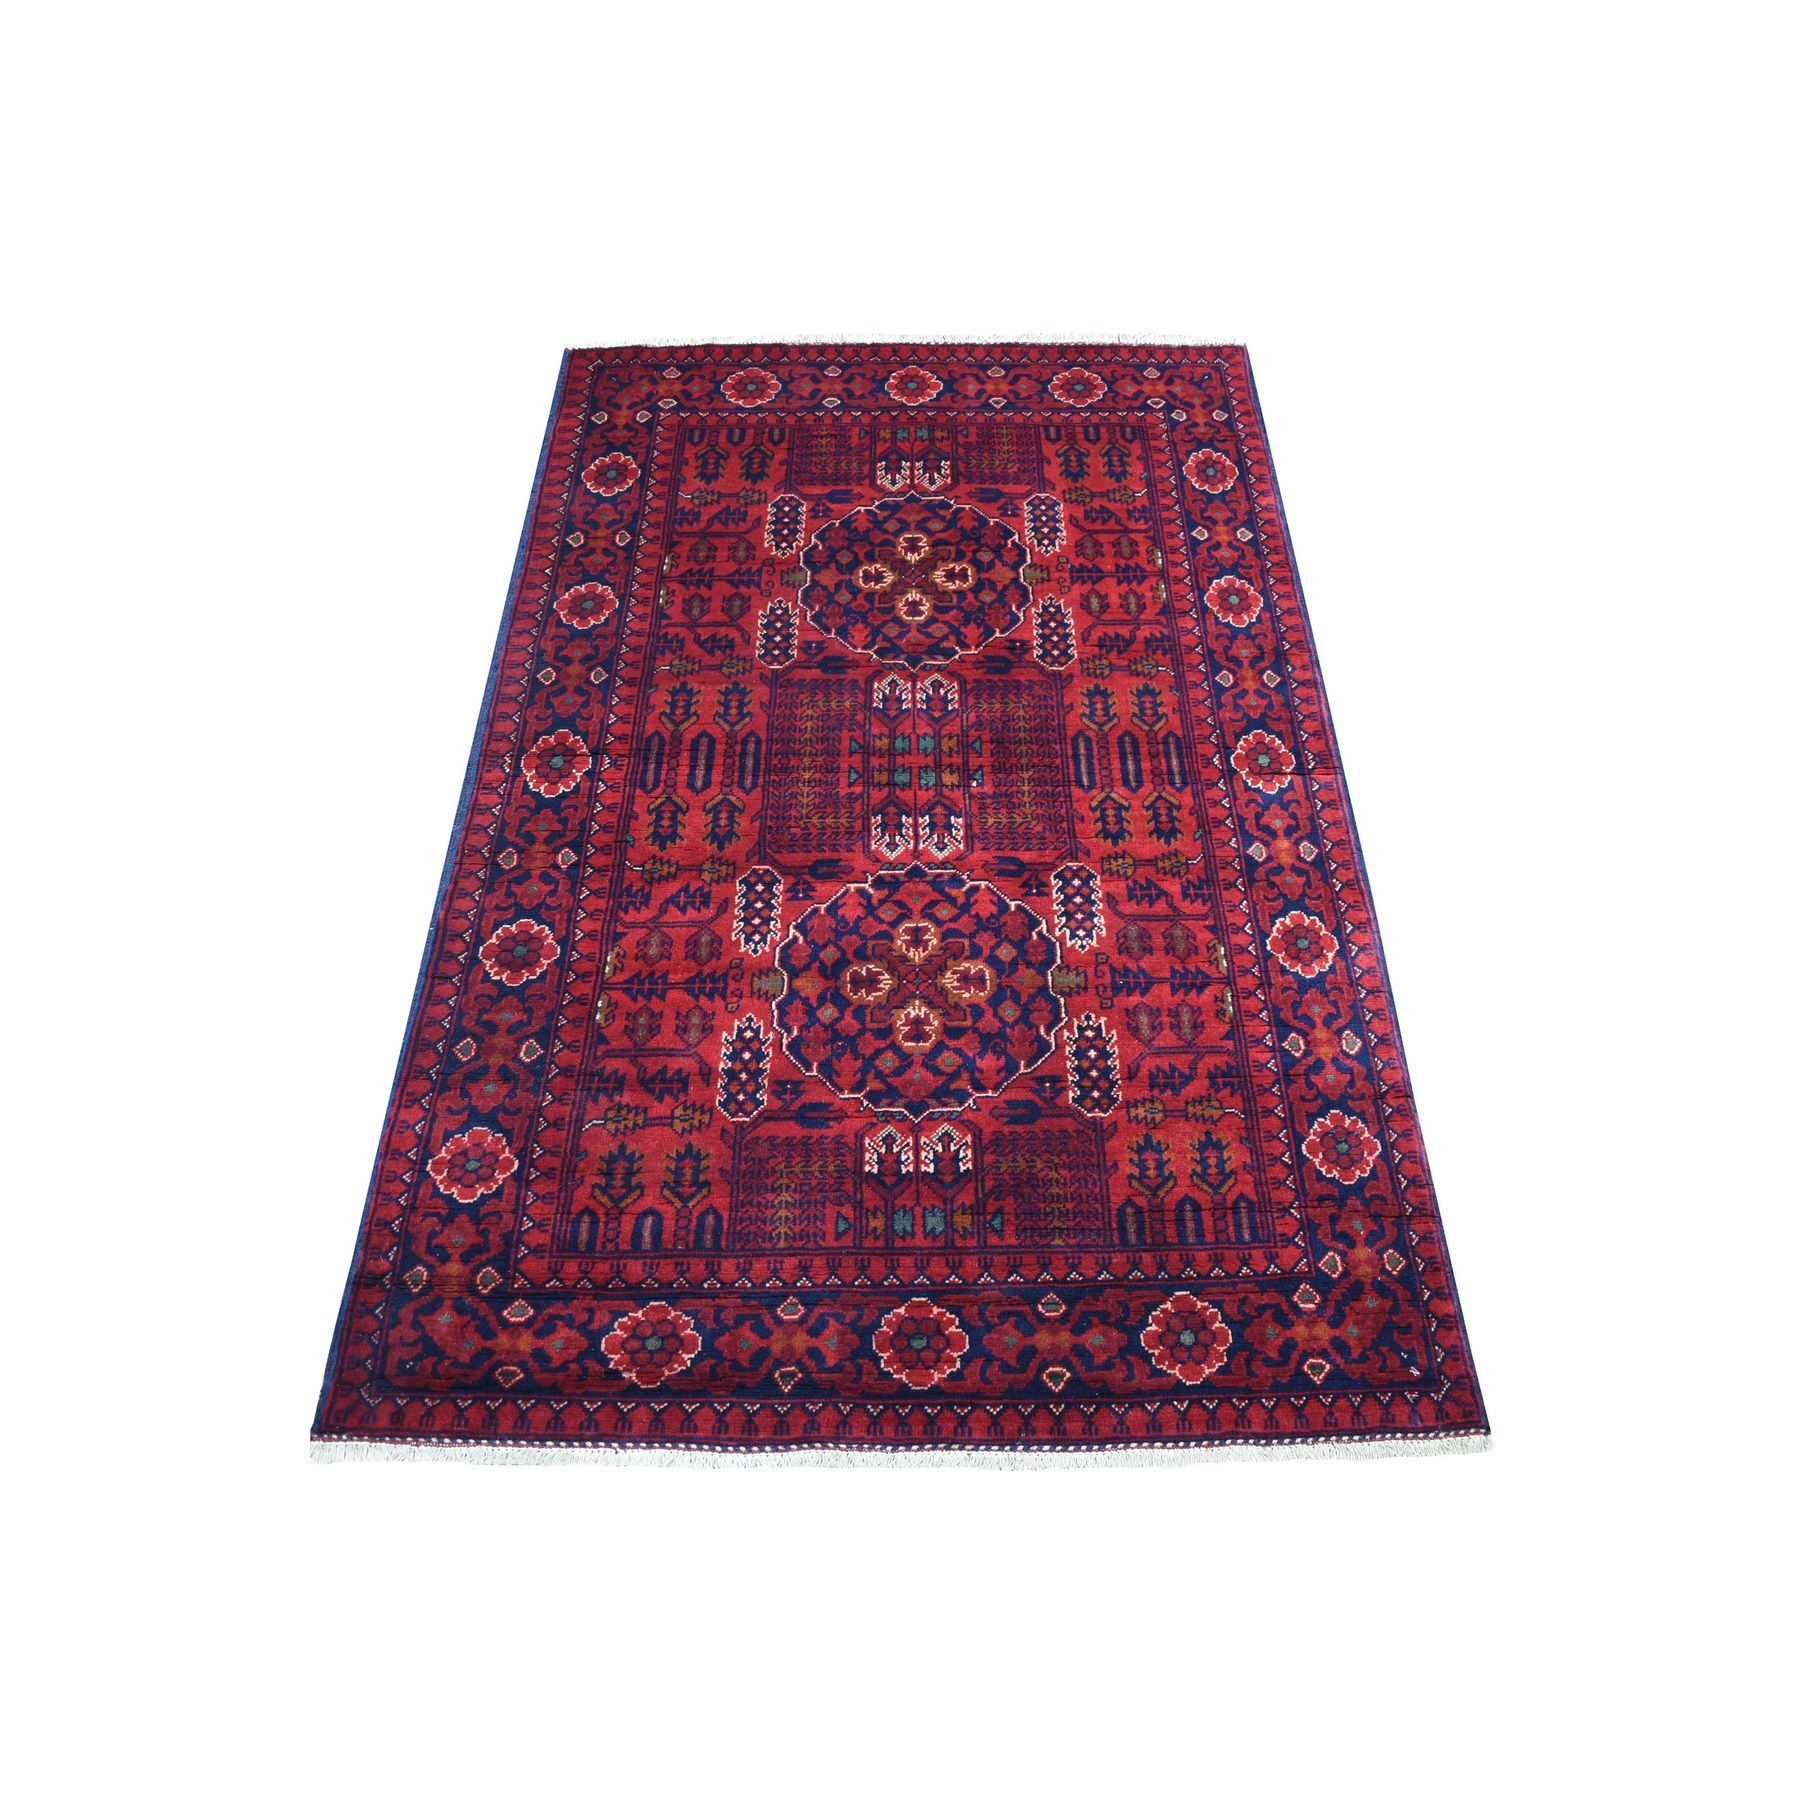 Nomadic And Village Collection Hand Knotted Red Rug No: 1136194